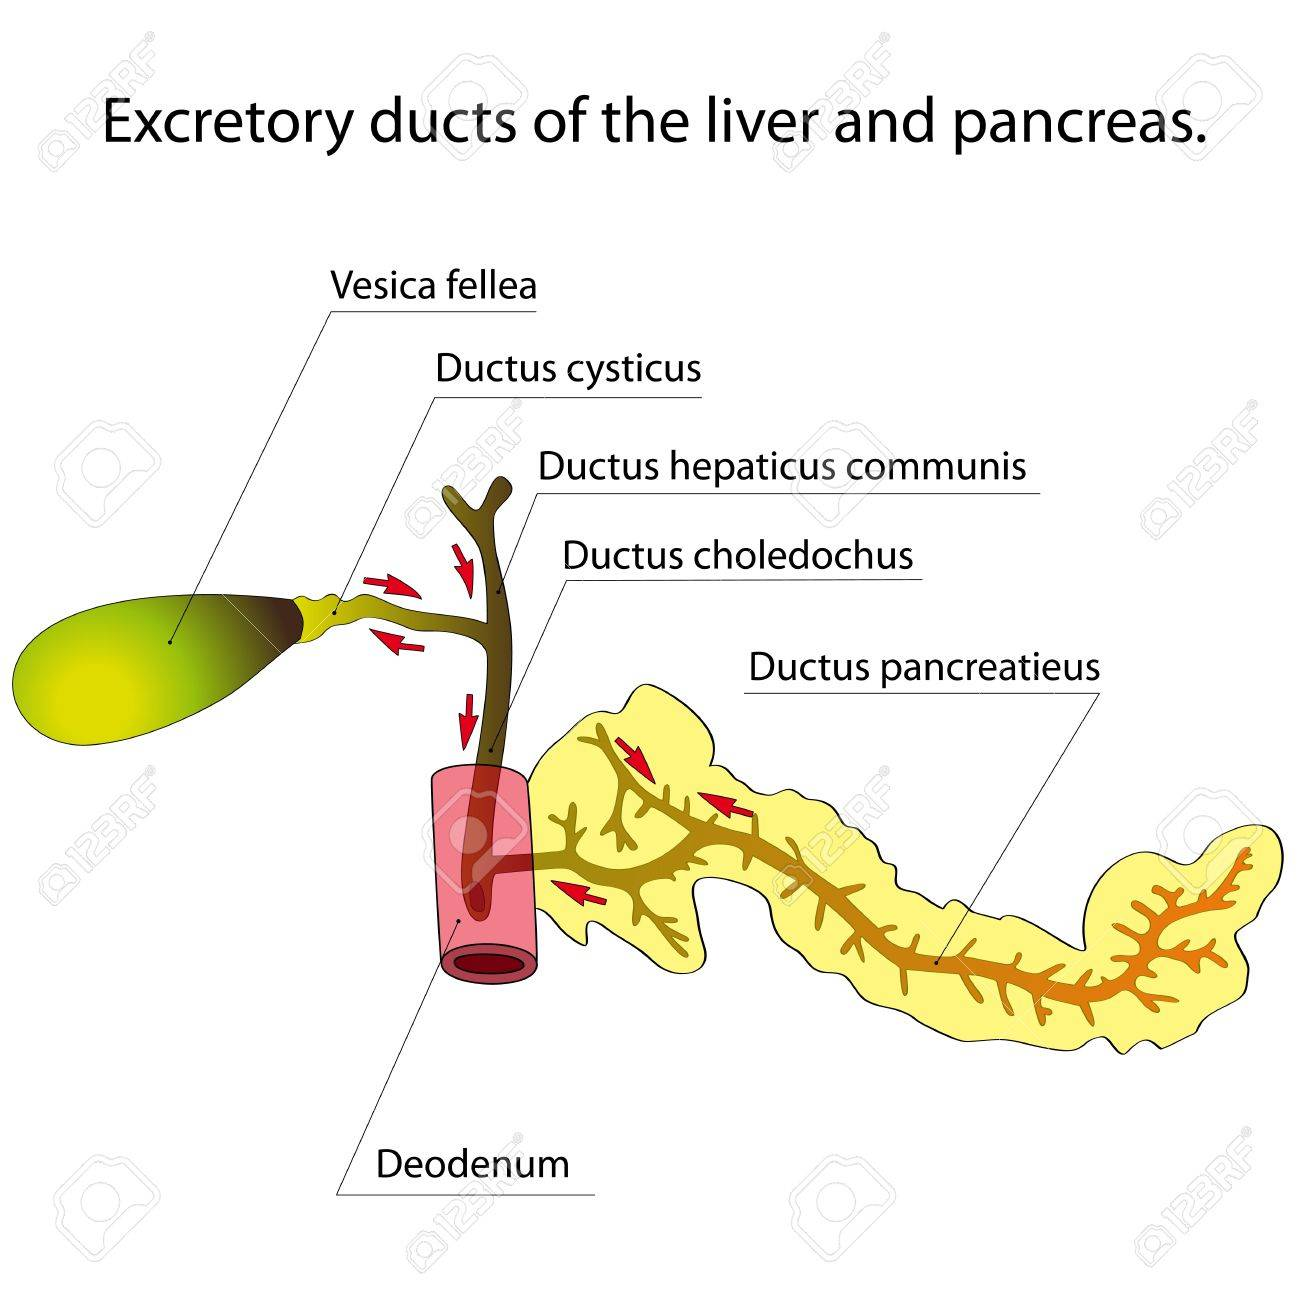 Excretory Ducts Of The Liver And Pancreas Arrows Indicate The